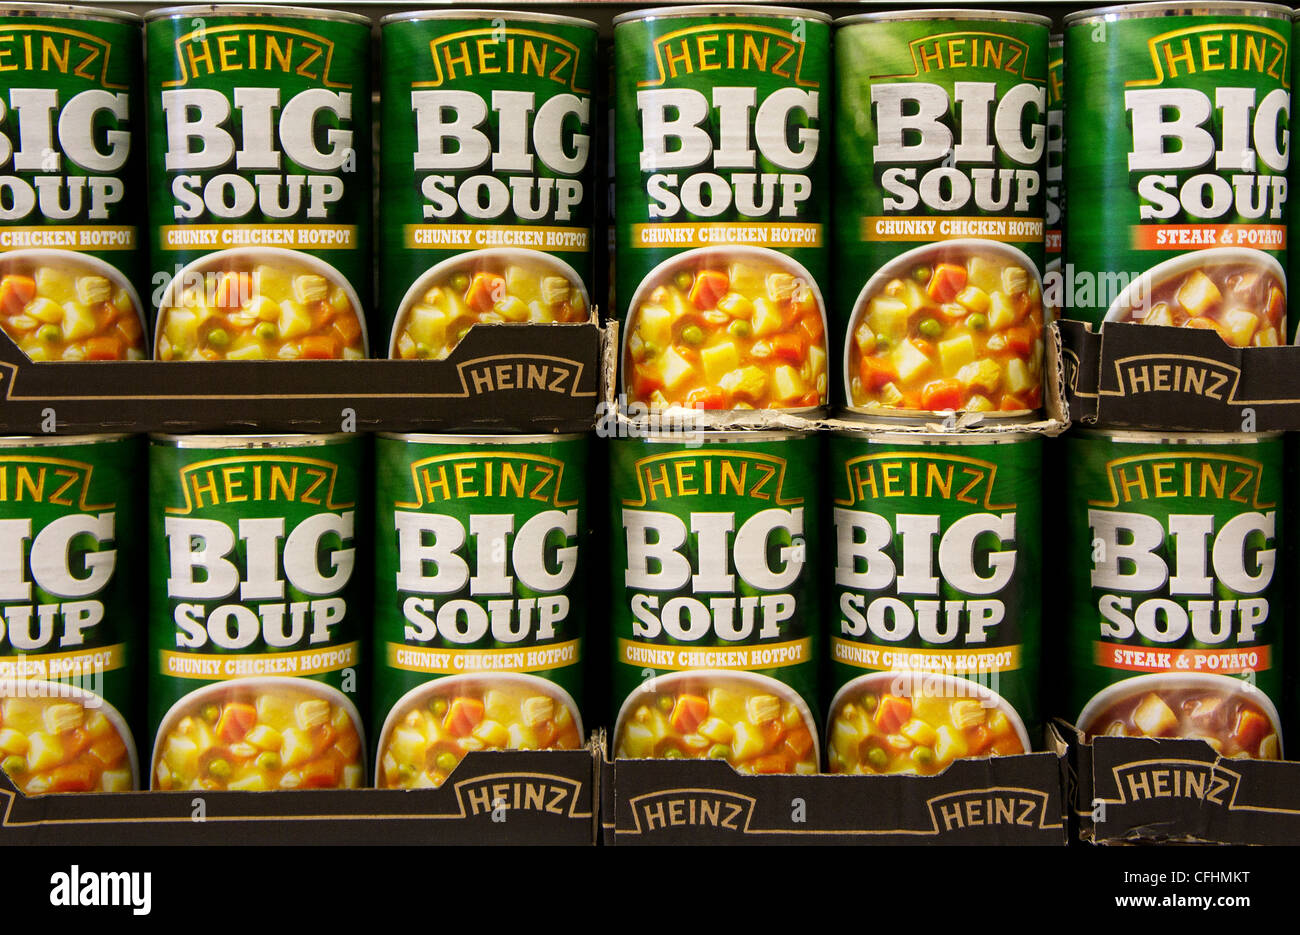 Tins of Heinz Big Soup - Stock Image